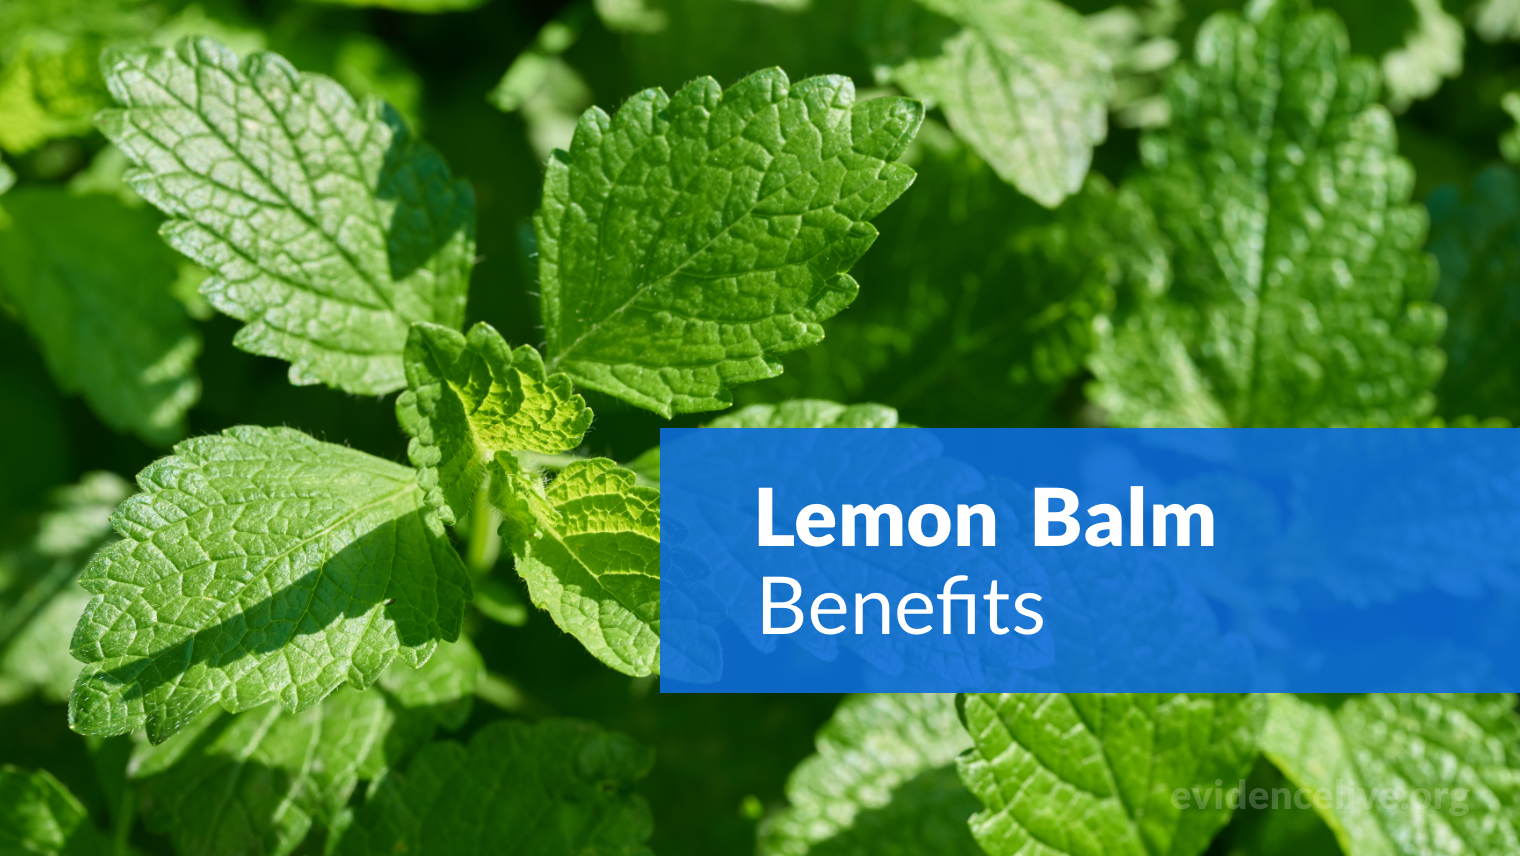 Lemon Balm Benefits: What It The Extract Used For?